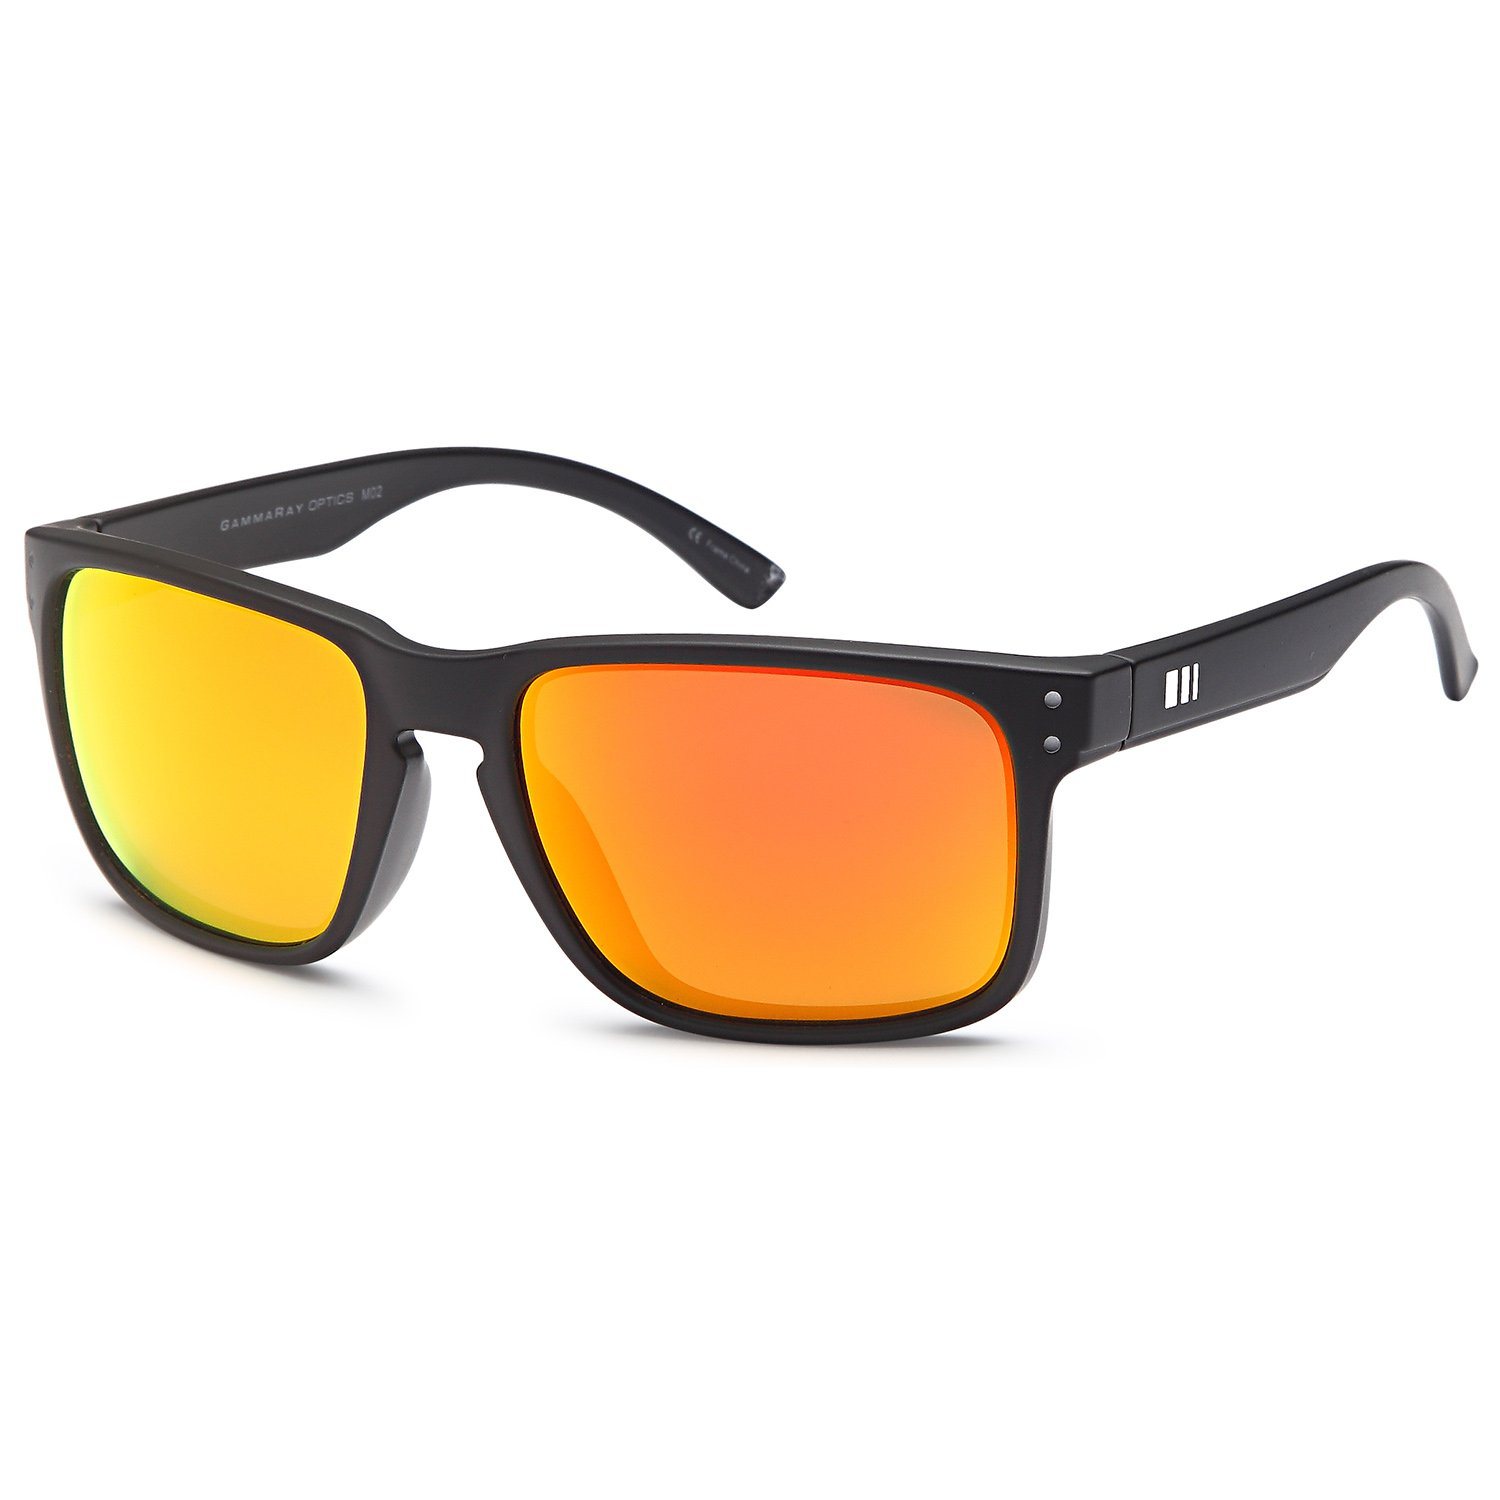 e5fd5e01c4 GAMMA RAY Polarized UV400 Classic Sunglasses with Shatterproof Nylon Frame  - Black Frame Orange Mirror Lens  Amazon.co.uk  Sports   Outdoors